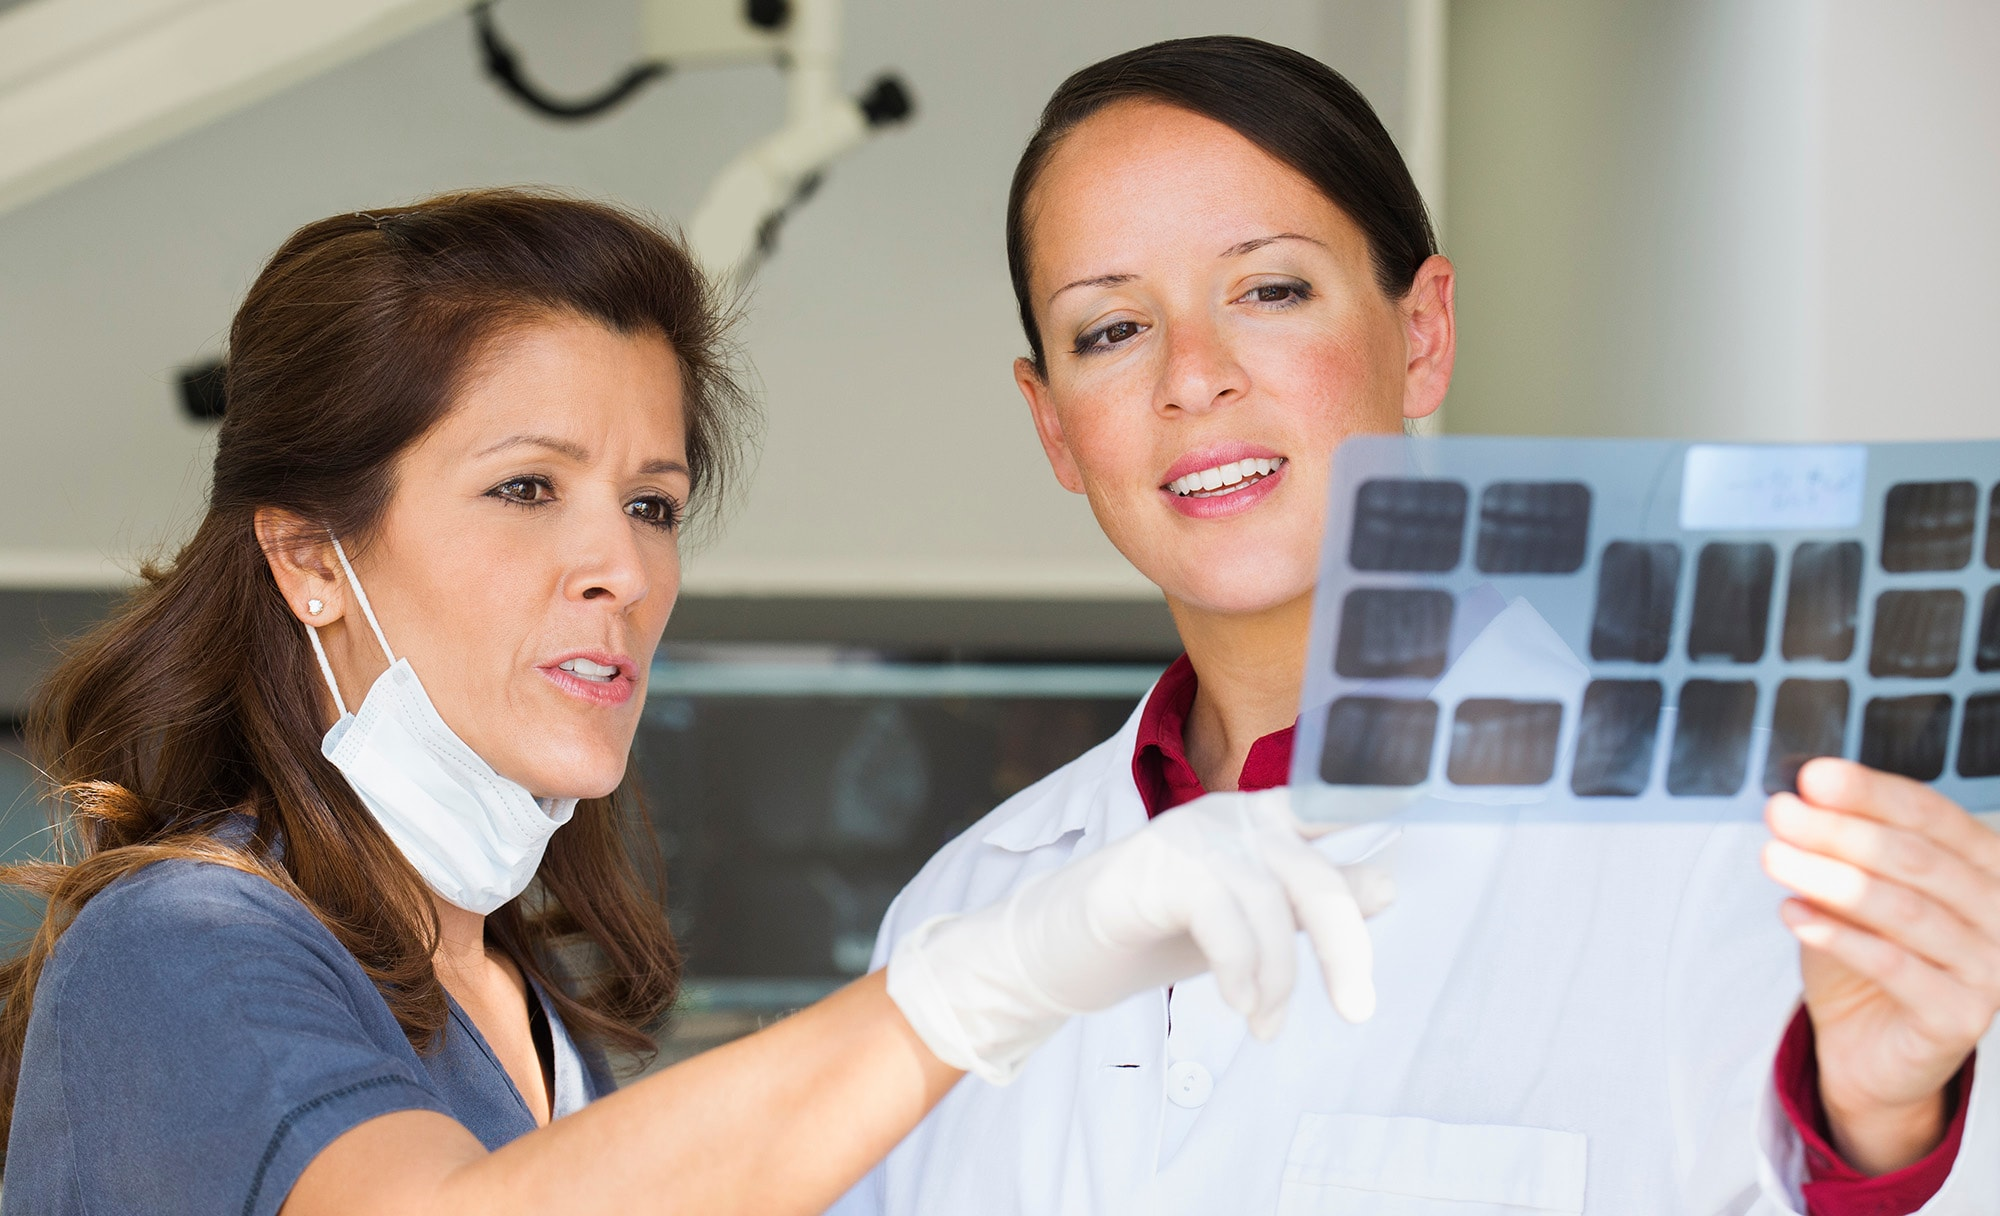 Doctors looking at x rays